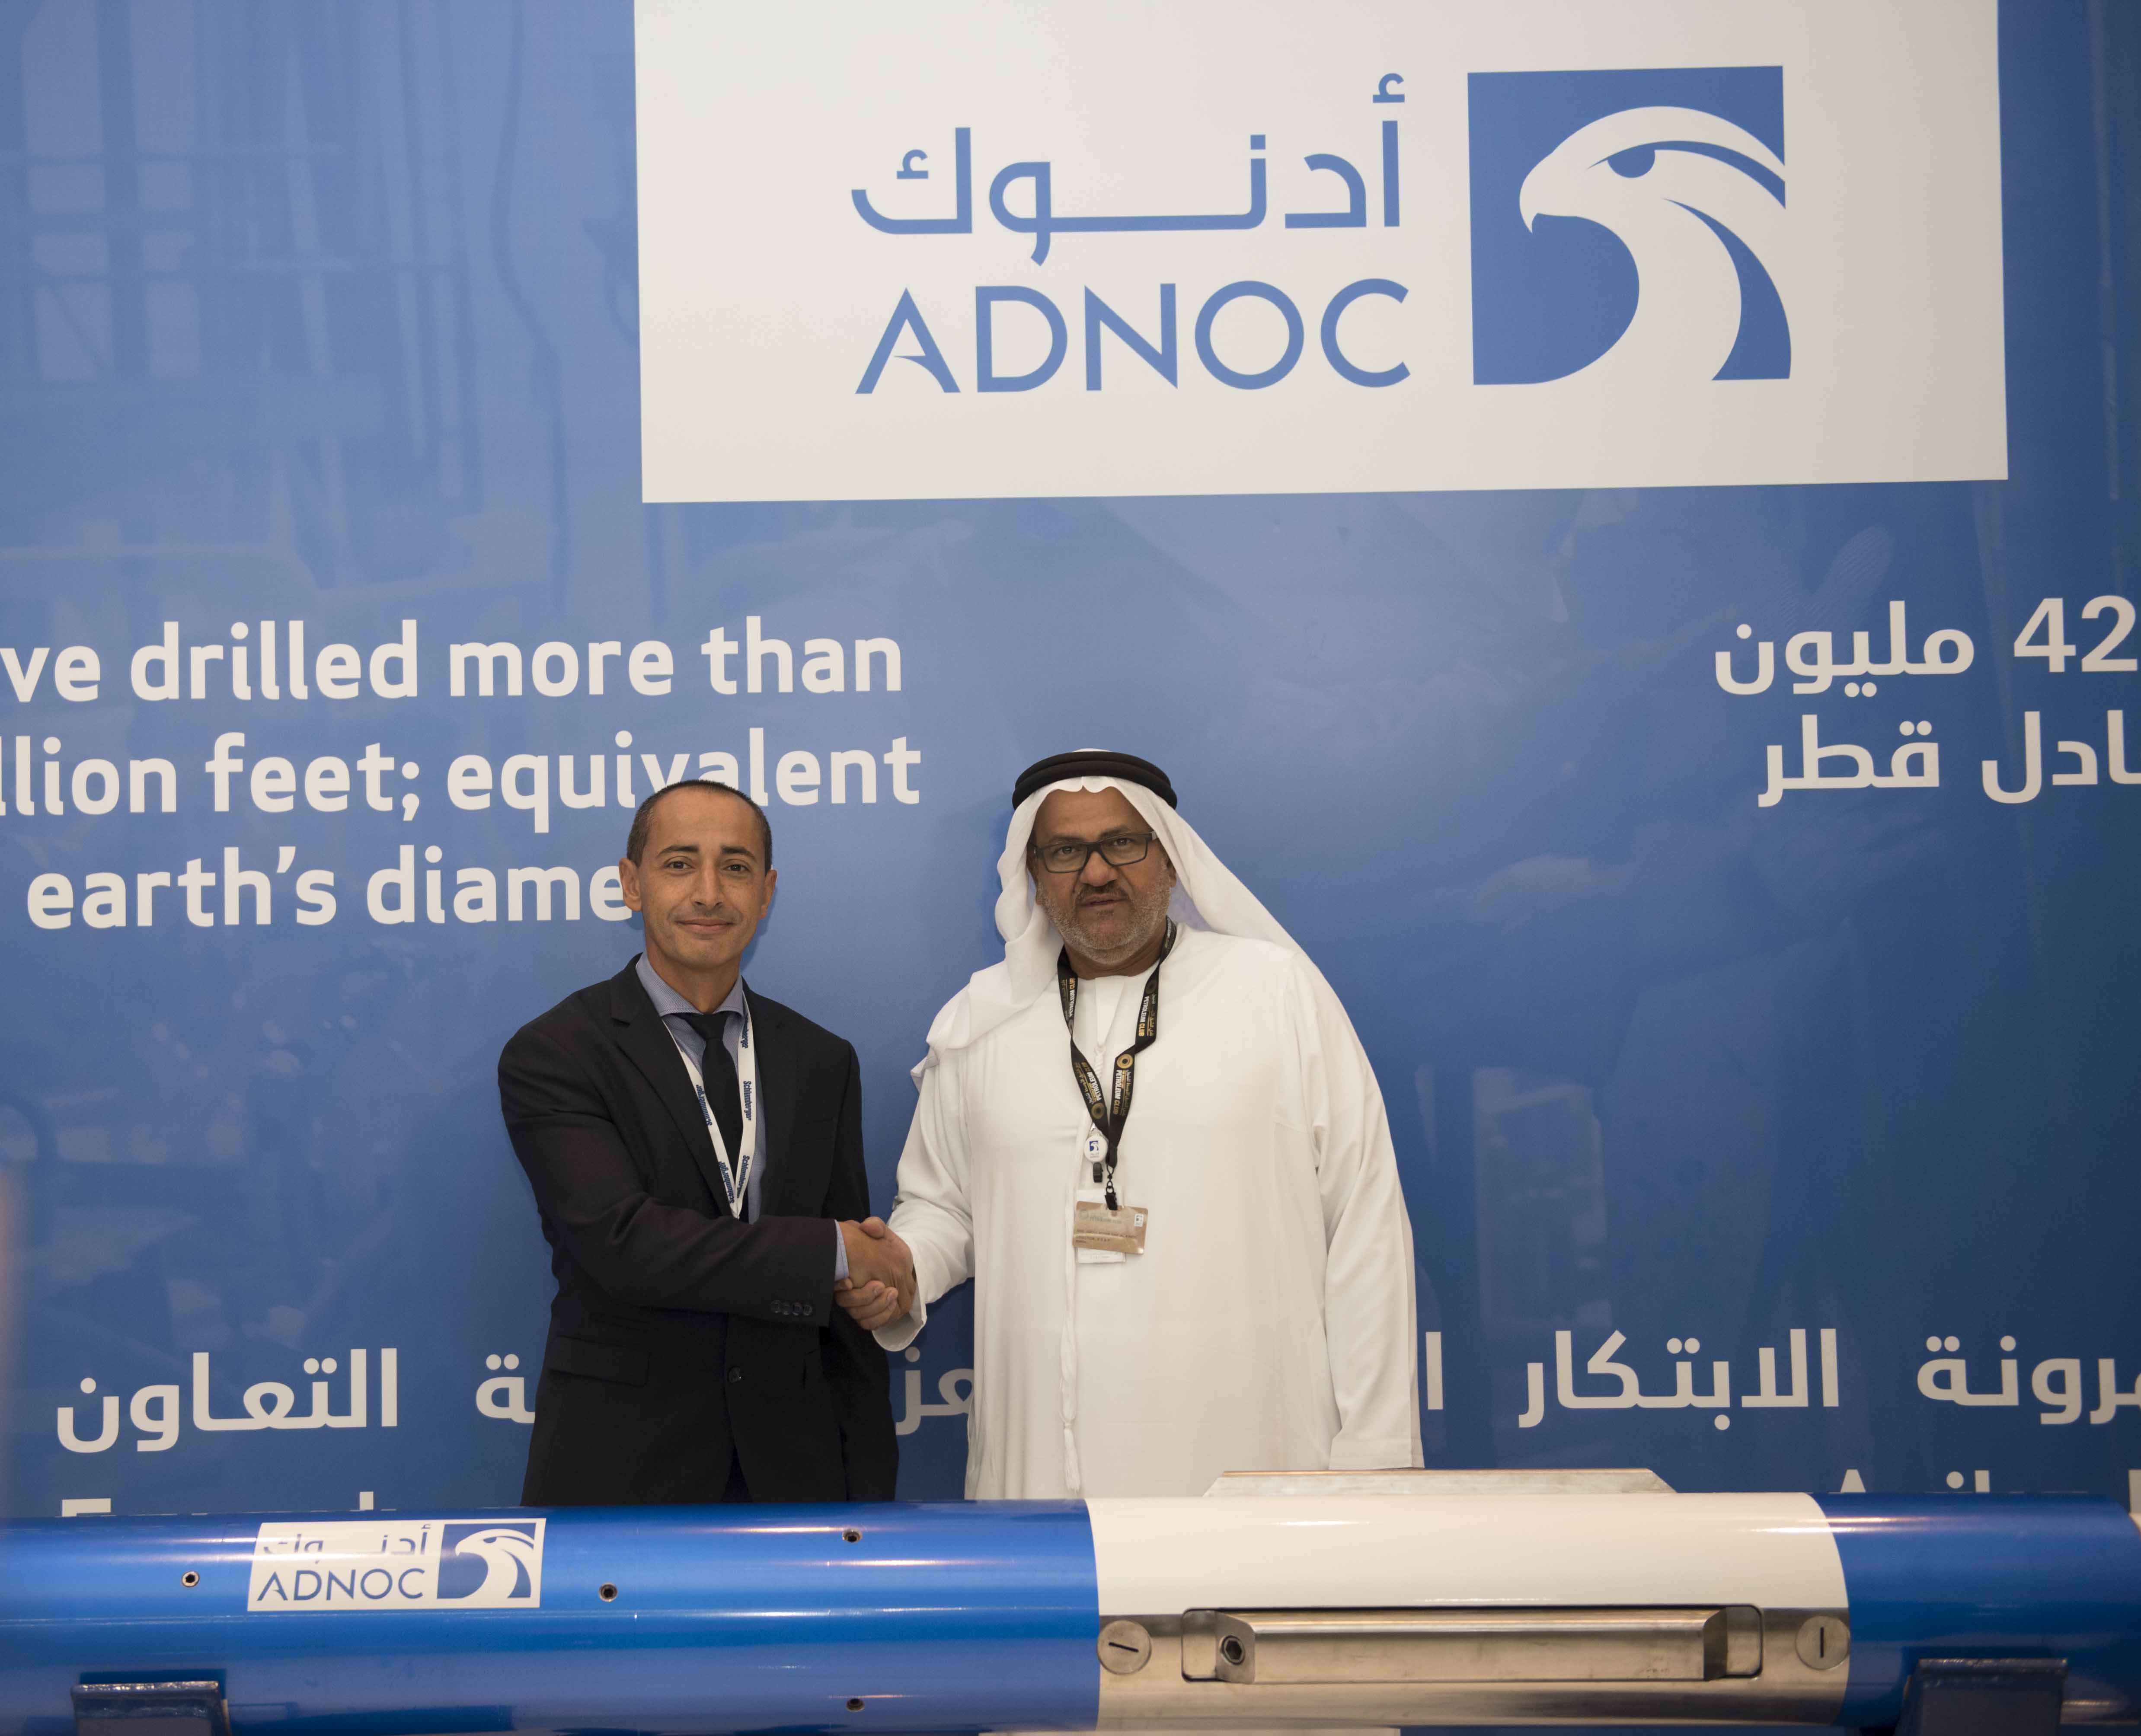 Schlumberger Licenses ADNOC Offshore Drilling Technology